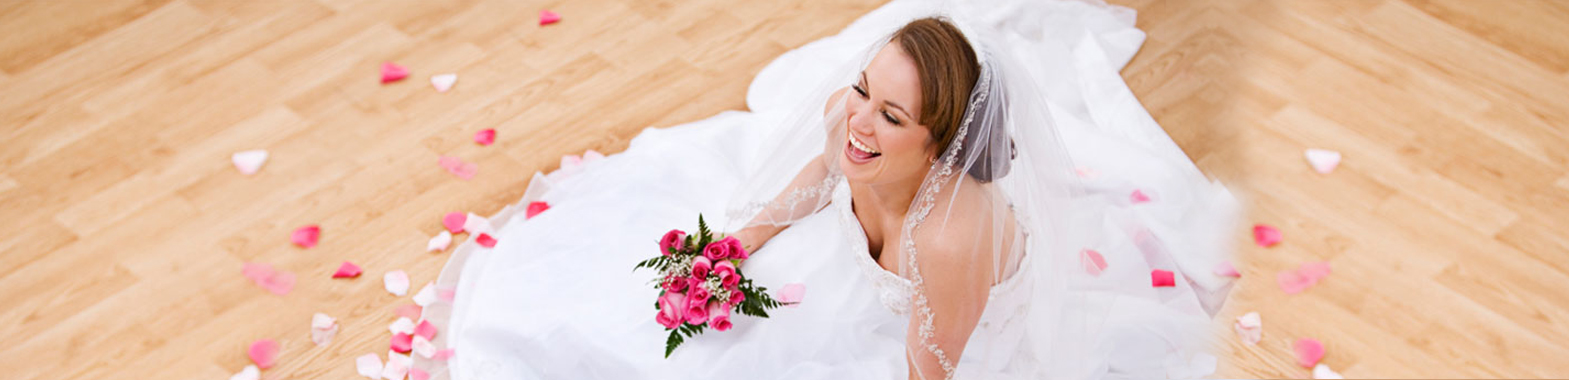 Weddings Facility at Herndon, Virginia Hotel